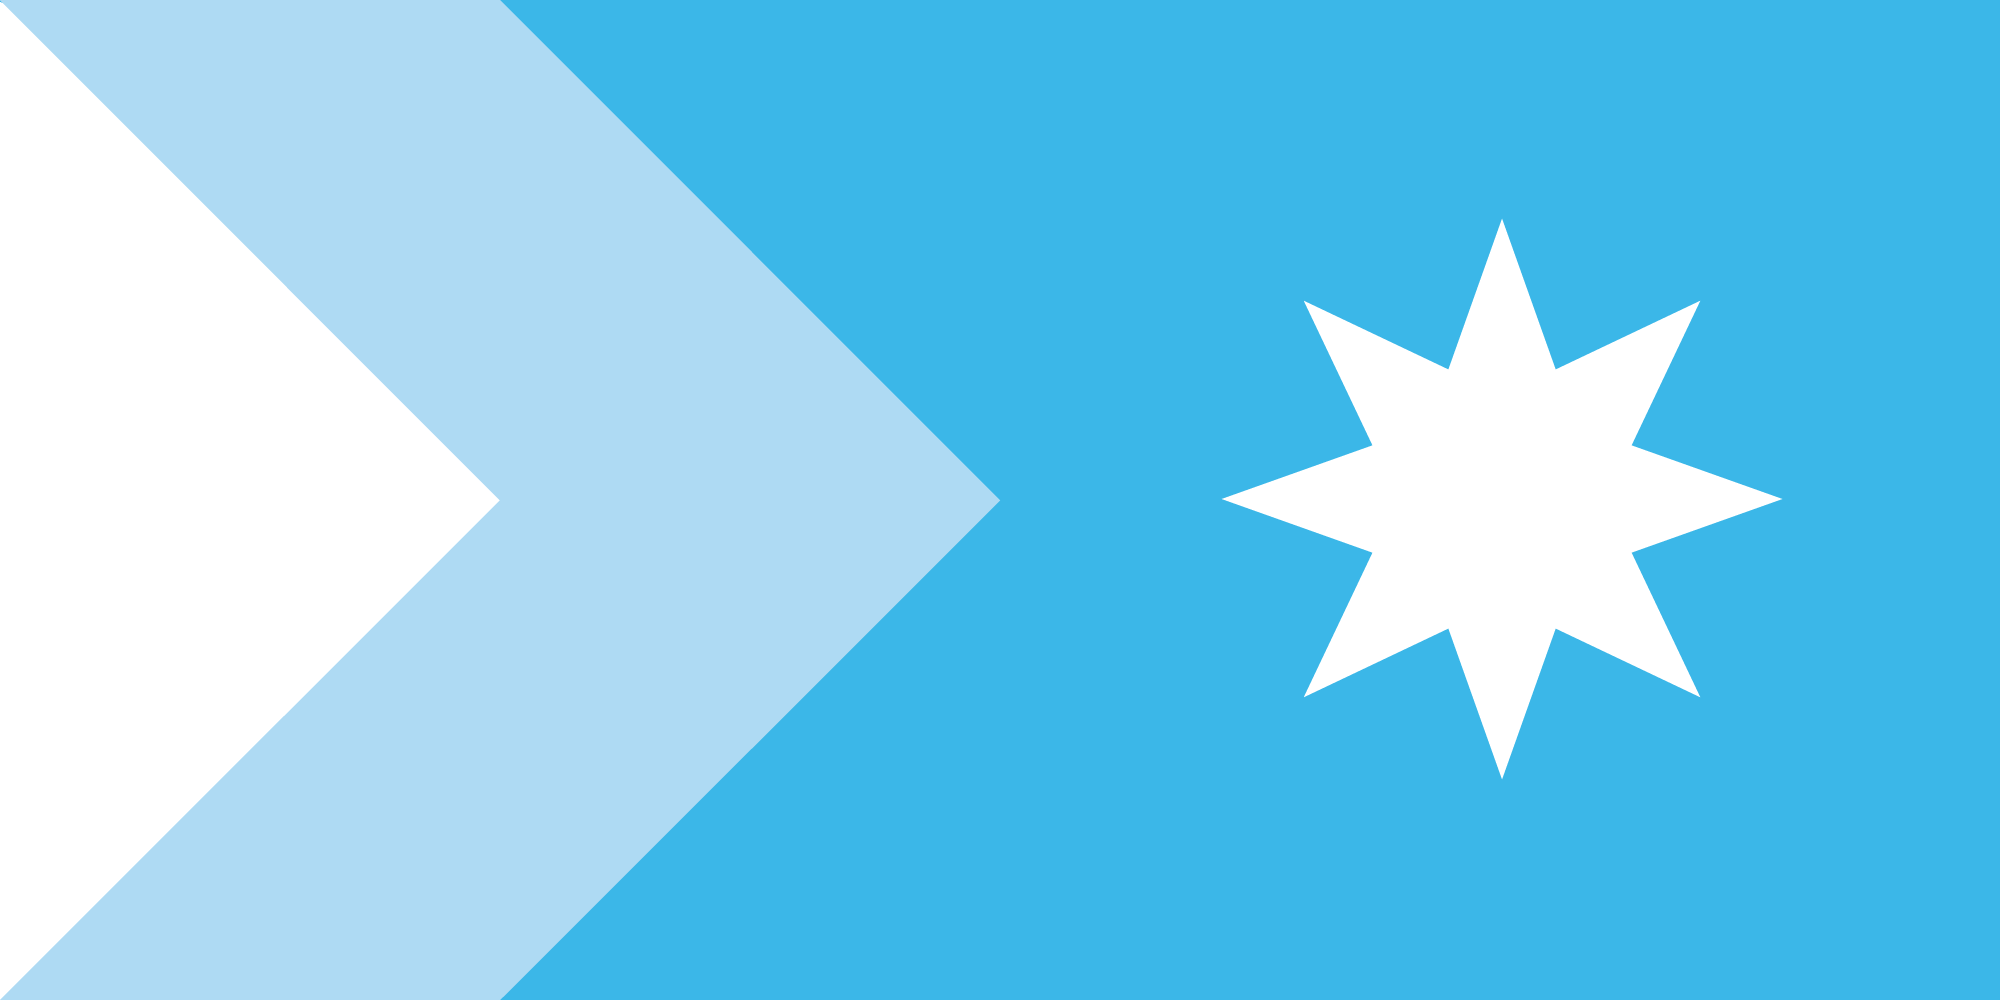 A state flag proposal for NSW